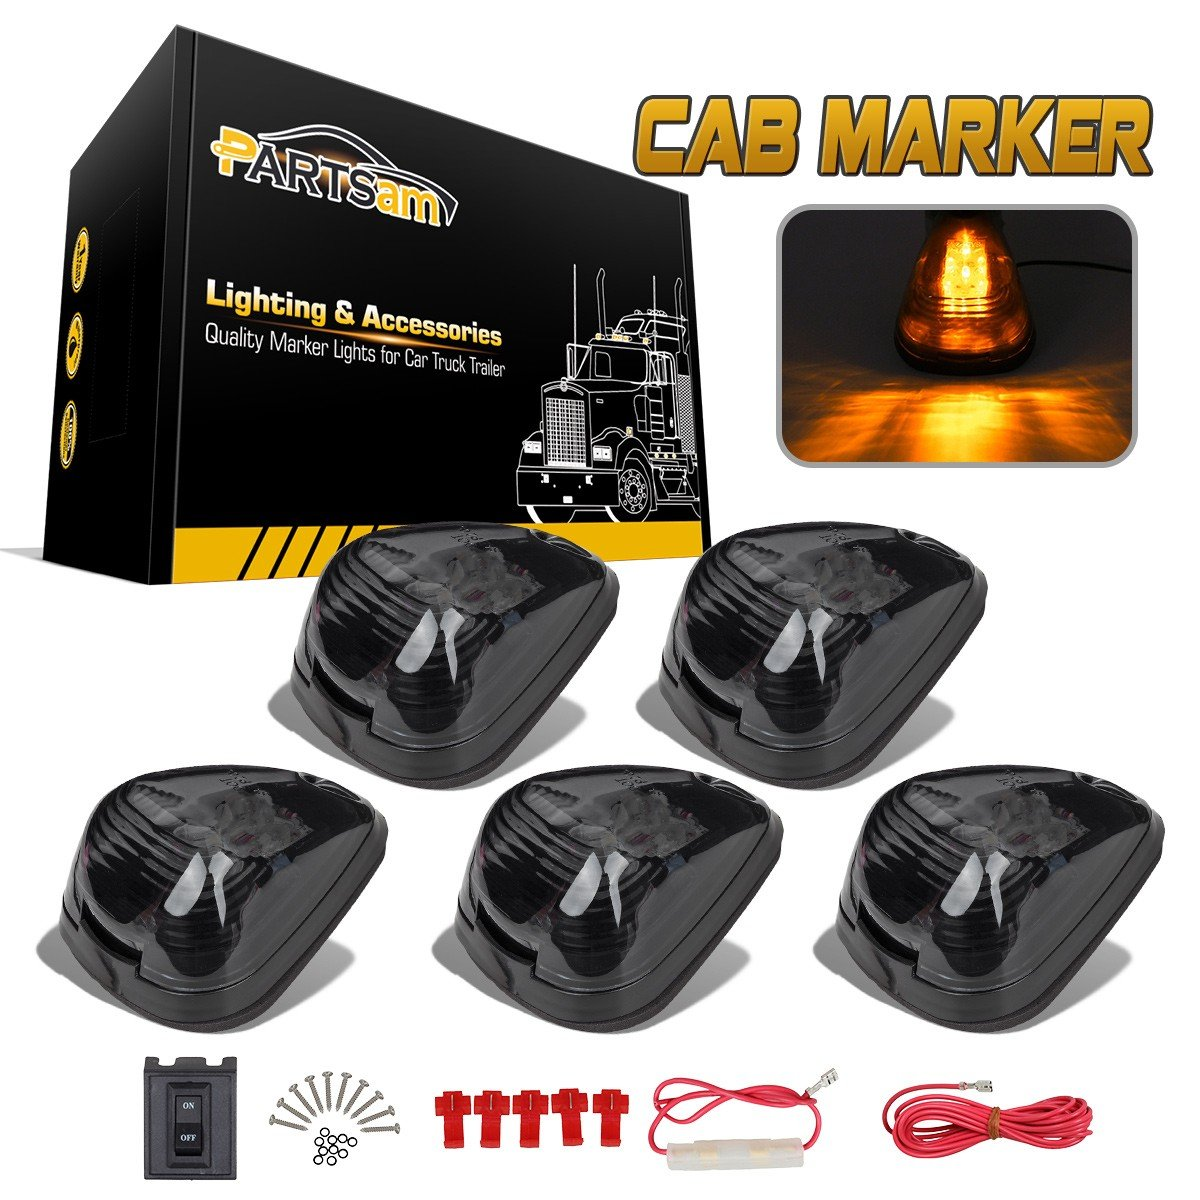 Partsam Smoke Cab Lights Amber Led Clearance Marker 1962 Ford Truck Brake Lamp Wiring Light 15442 Assembly W Pack For 1999 2016 F150 F250 F350 Super Duty Pickup